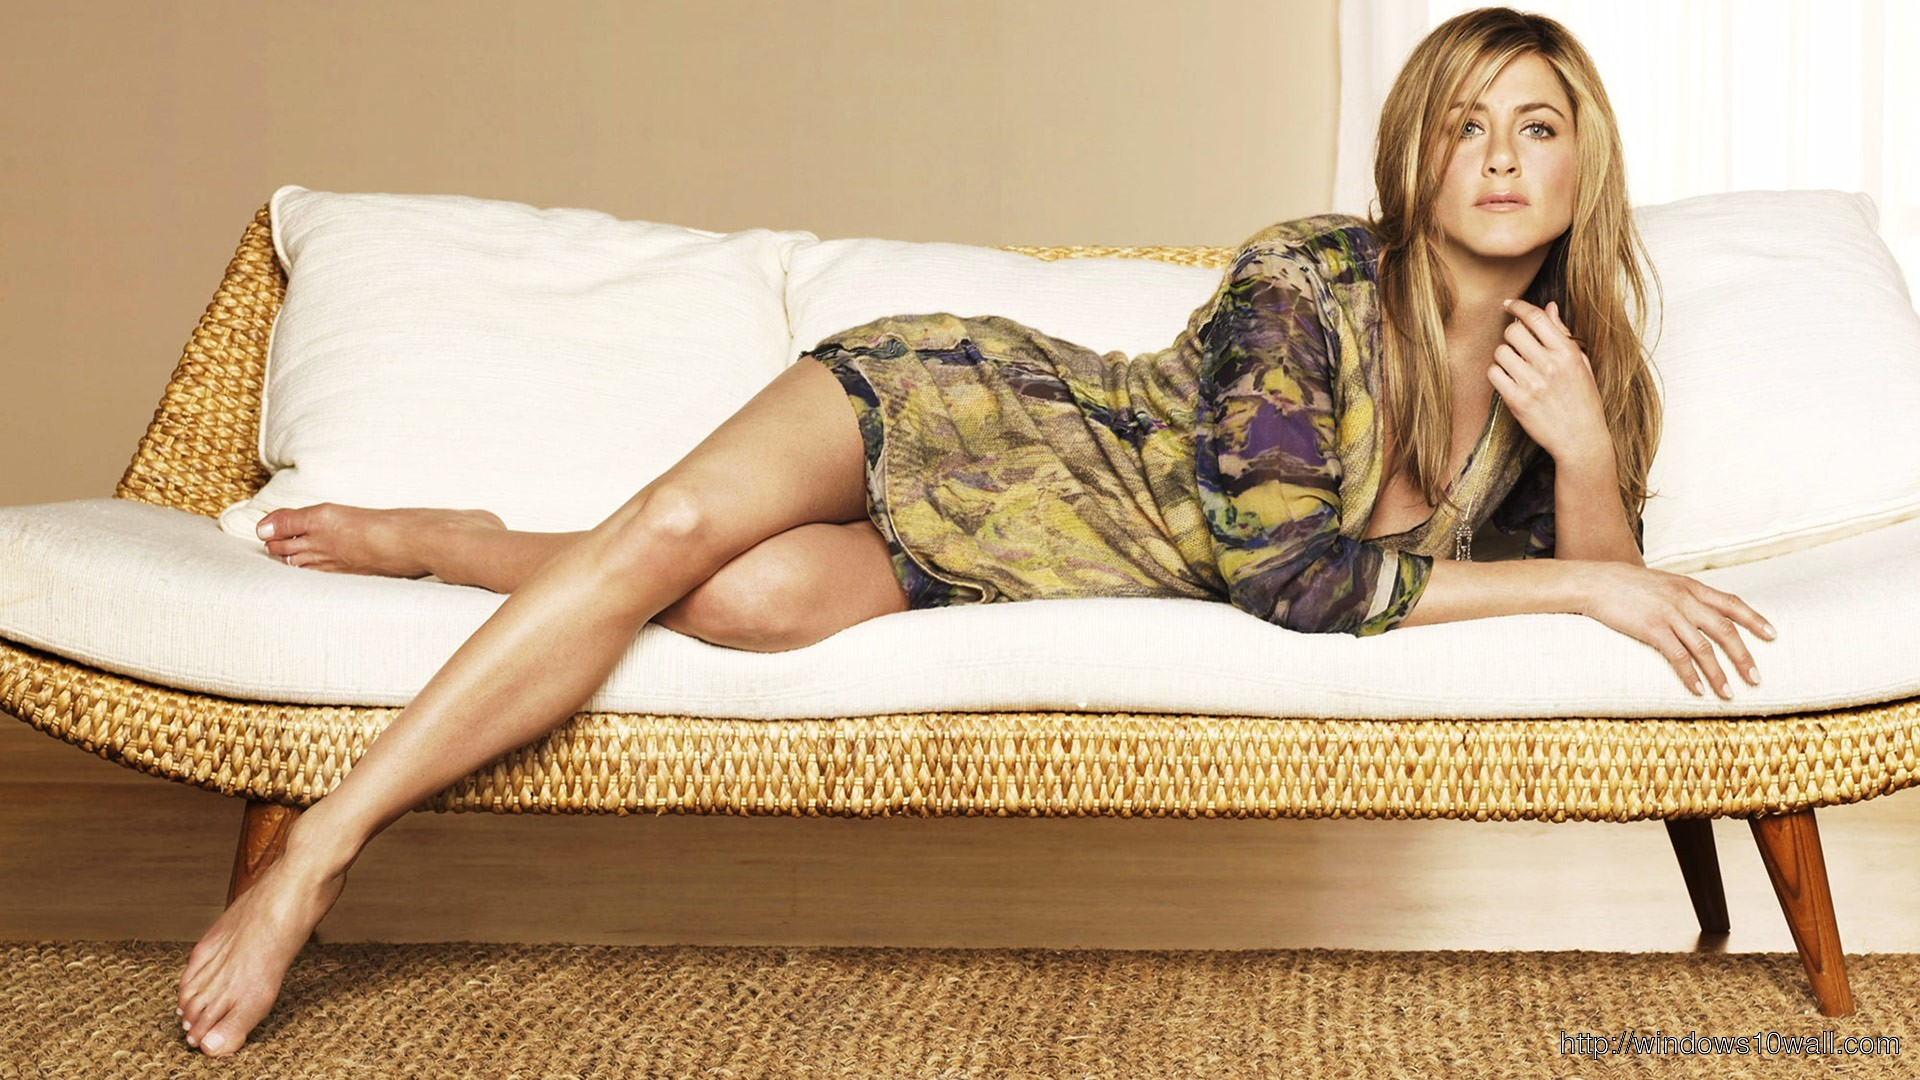 Hollywood Celebrity Jennifer Aniston Hot HD Wallpaper